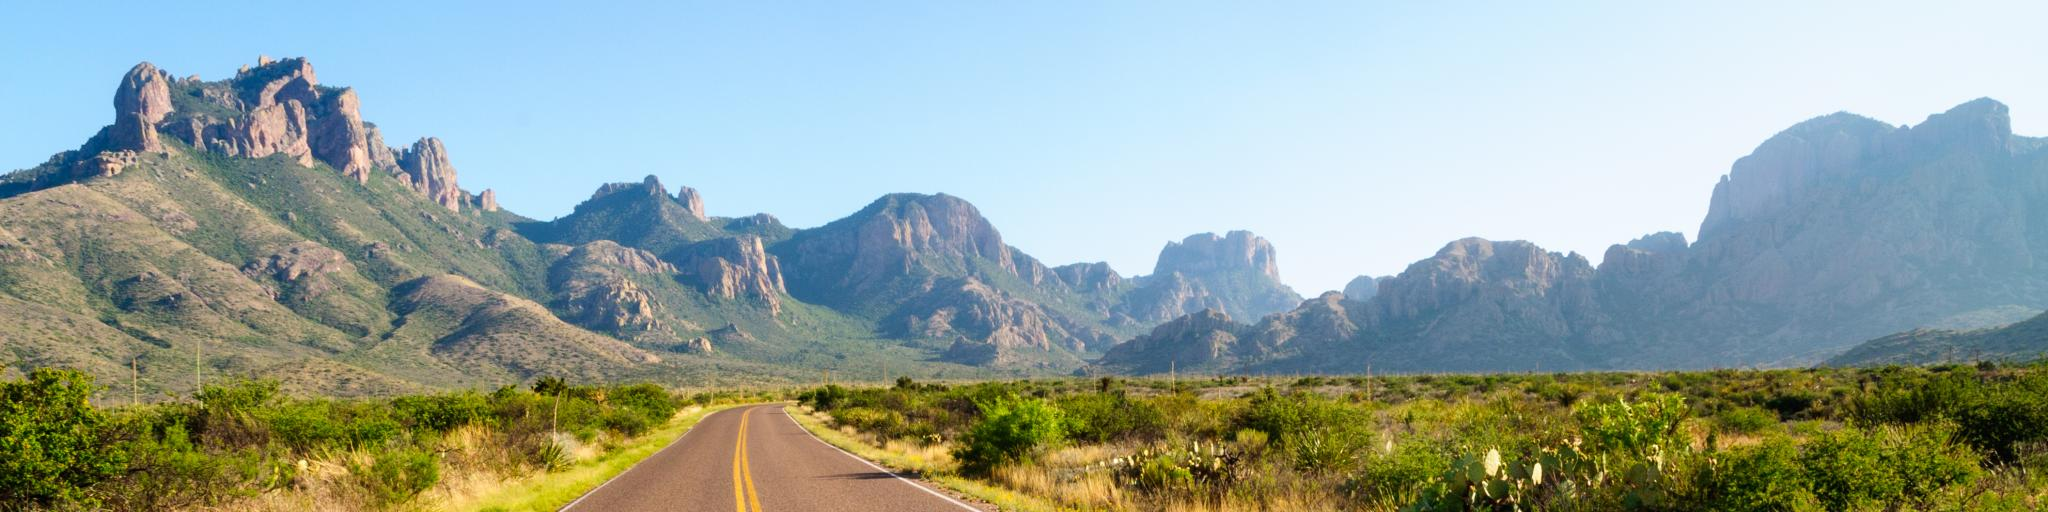 Road running through the Big Bend National Park in Texas with mountains in the background.